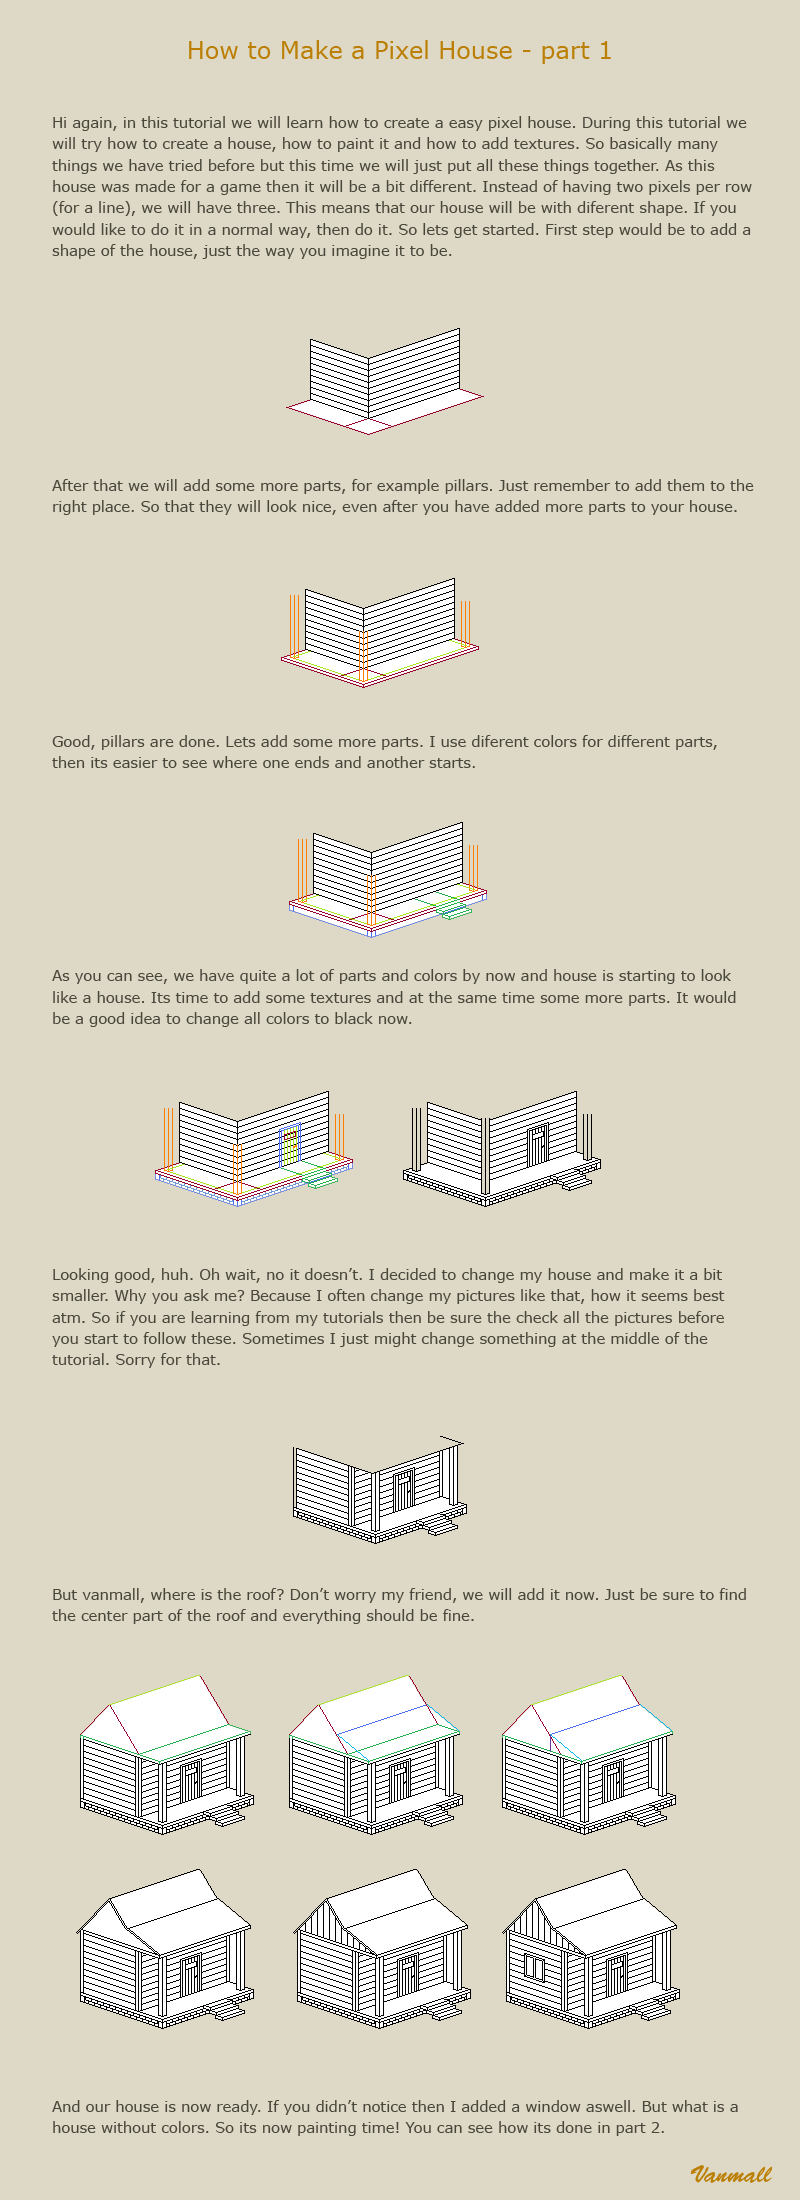 How to make a pixel house 1 by vanmall